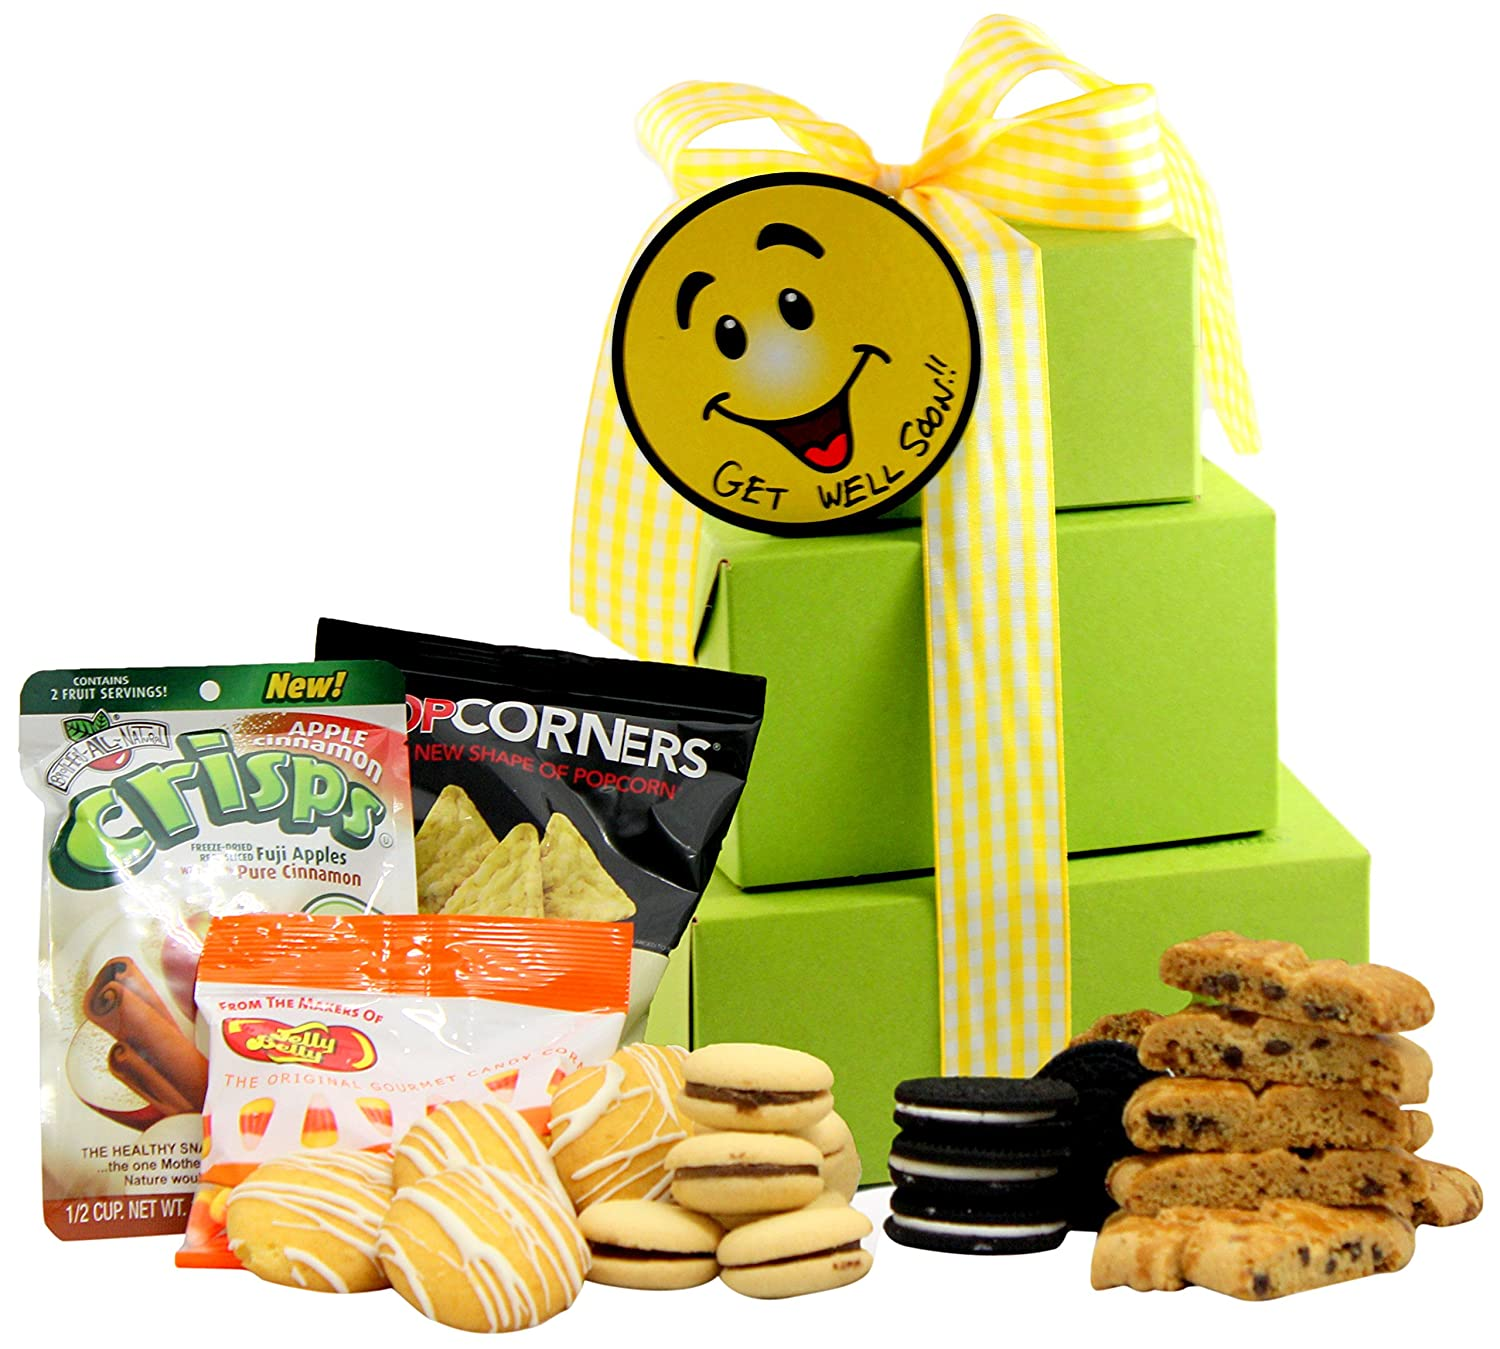 CDM product GlutenFreePalace.com Large-Palace Smiles and Cheer, Get Well Gift Tower, 2-Pound, Large big image